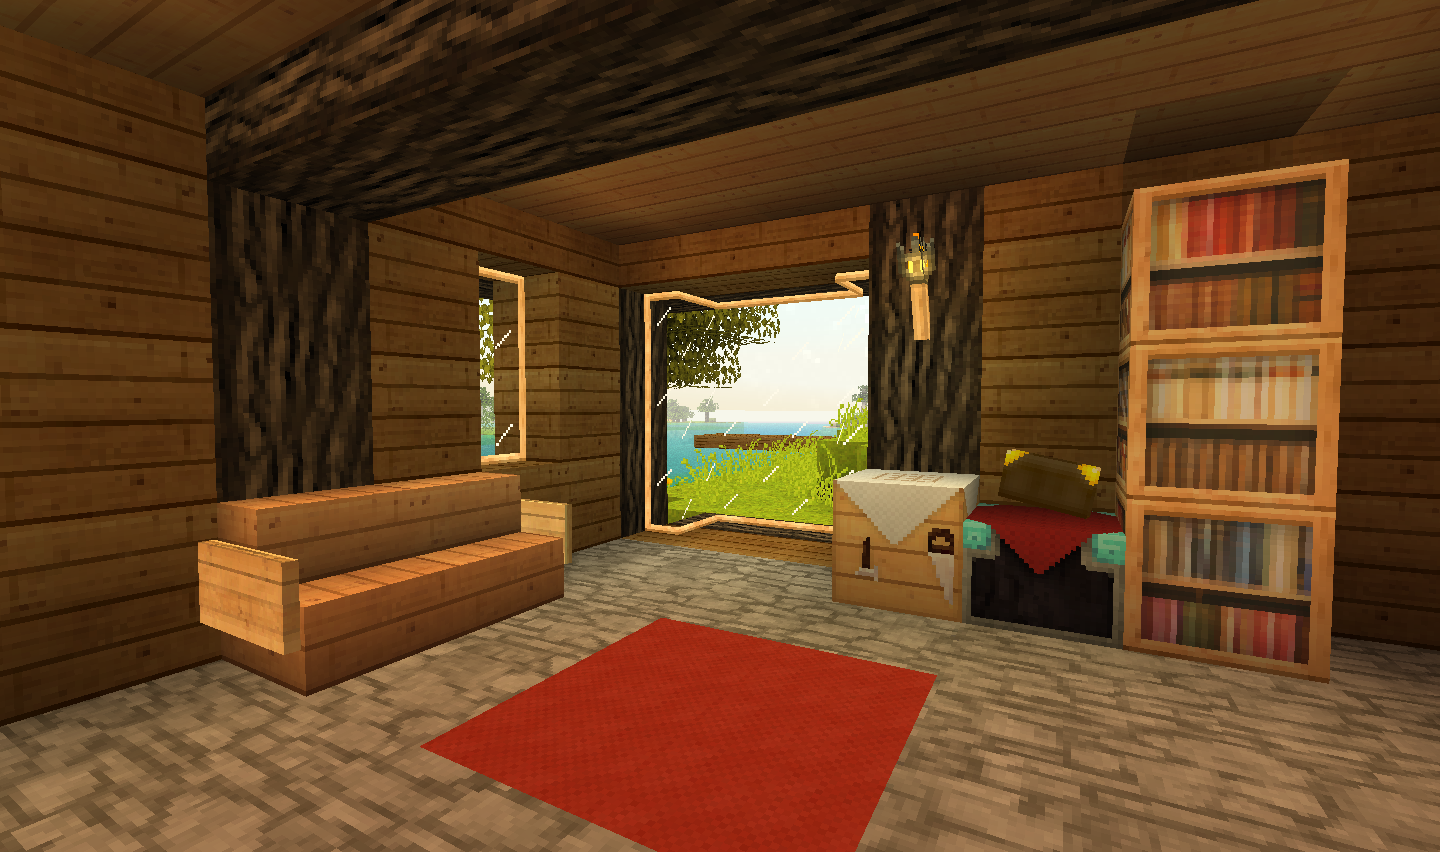 http://azminecraft.info/wp-content/uploads/2014/05/33569__Willpack-HD-Texture-Pack-2.png